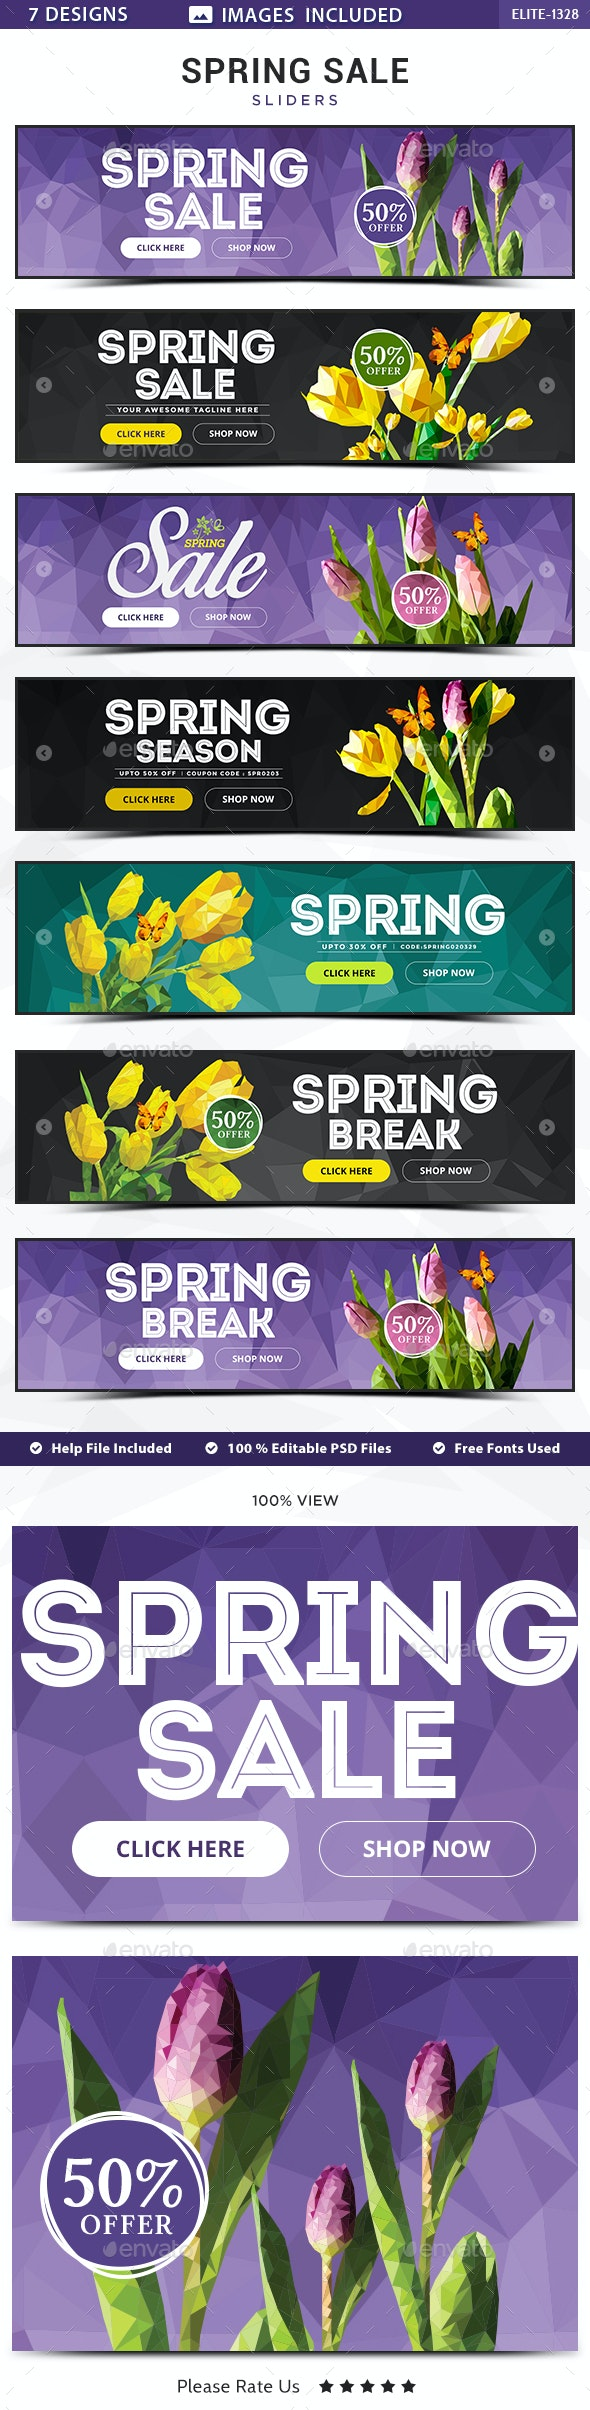 Spring Sale Sliders -  7 Designs - Sliders & Features Web Elements